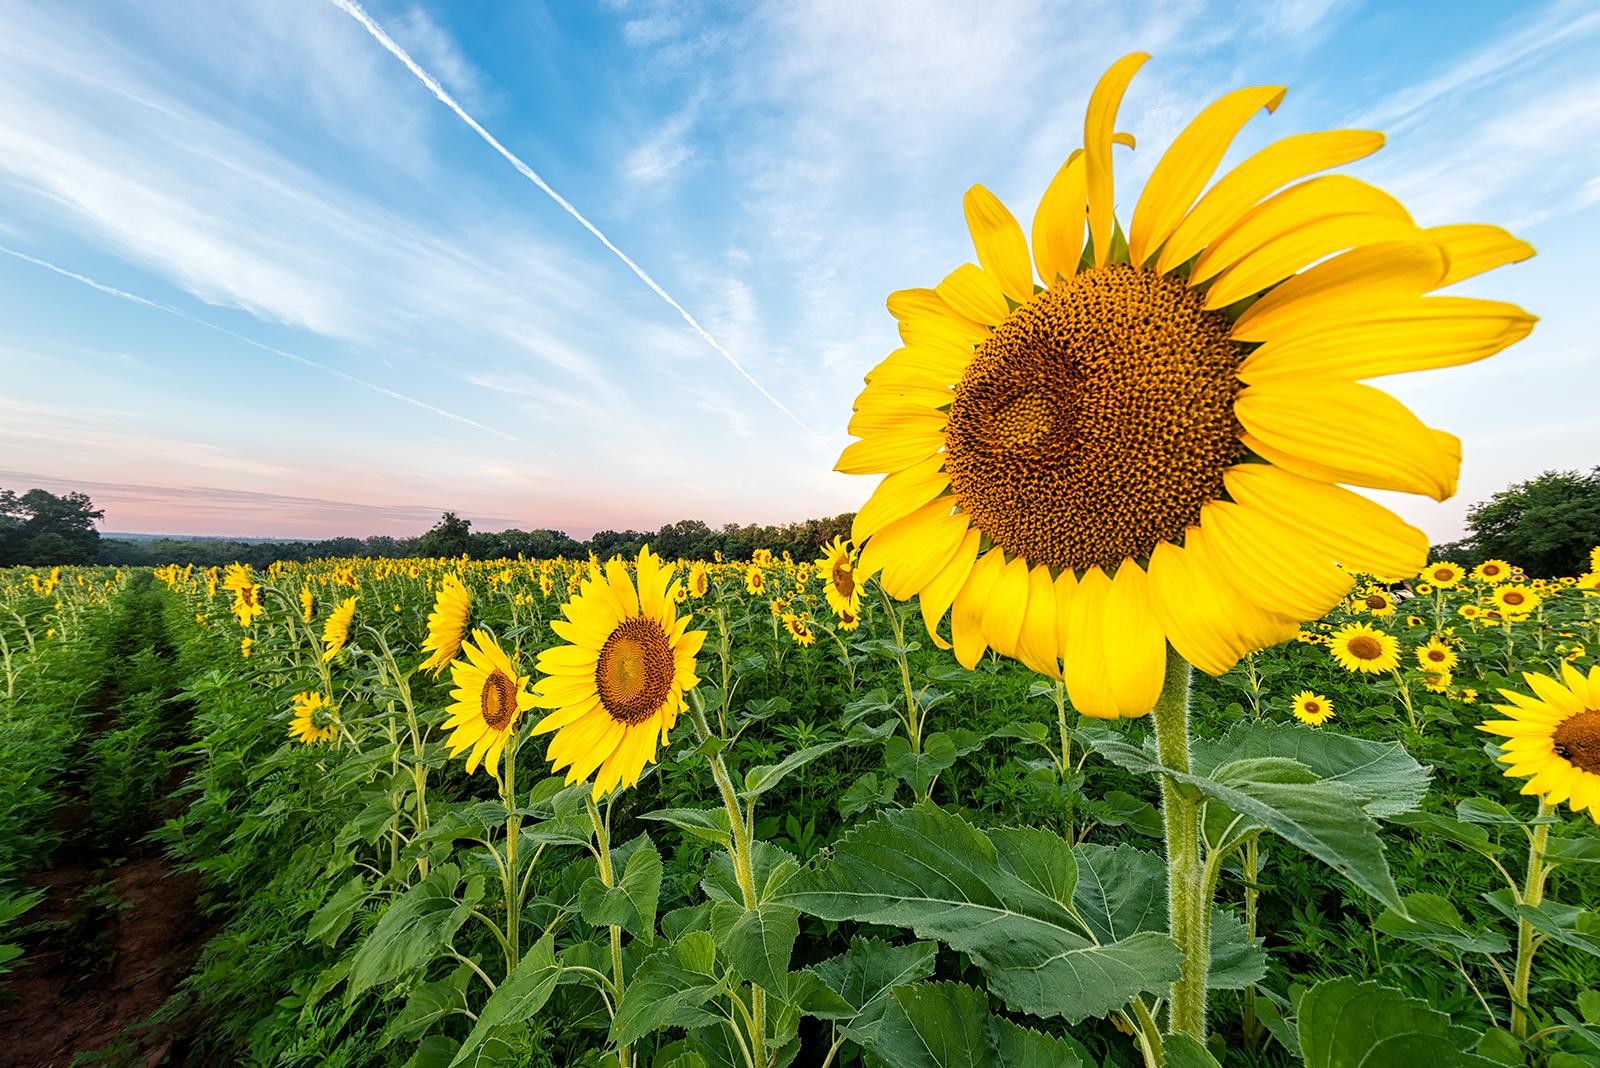 Field of Sunflowers at Dawn. McKee-Beshers Wildlife Management Area